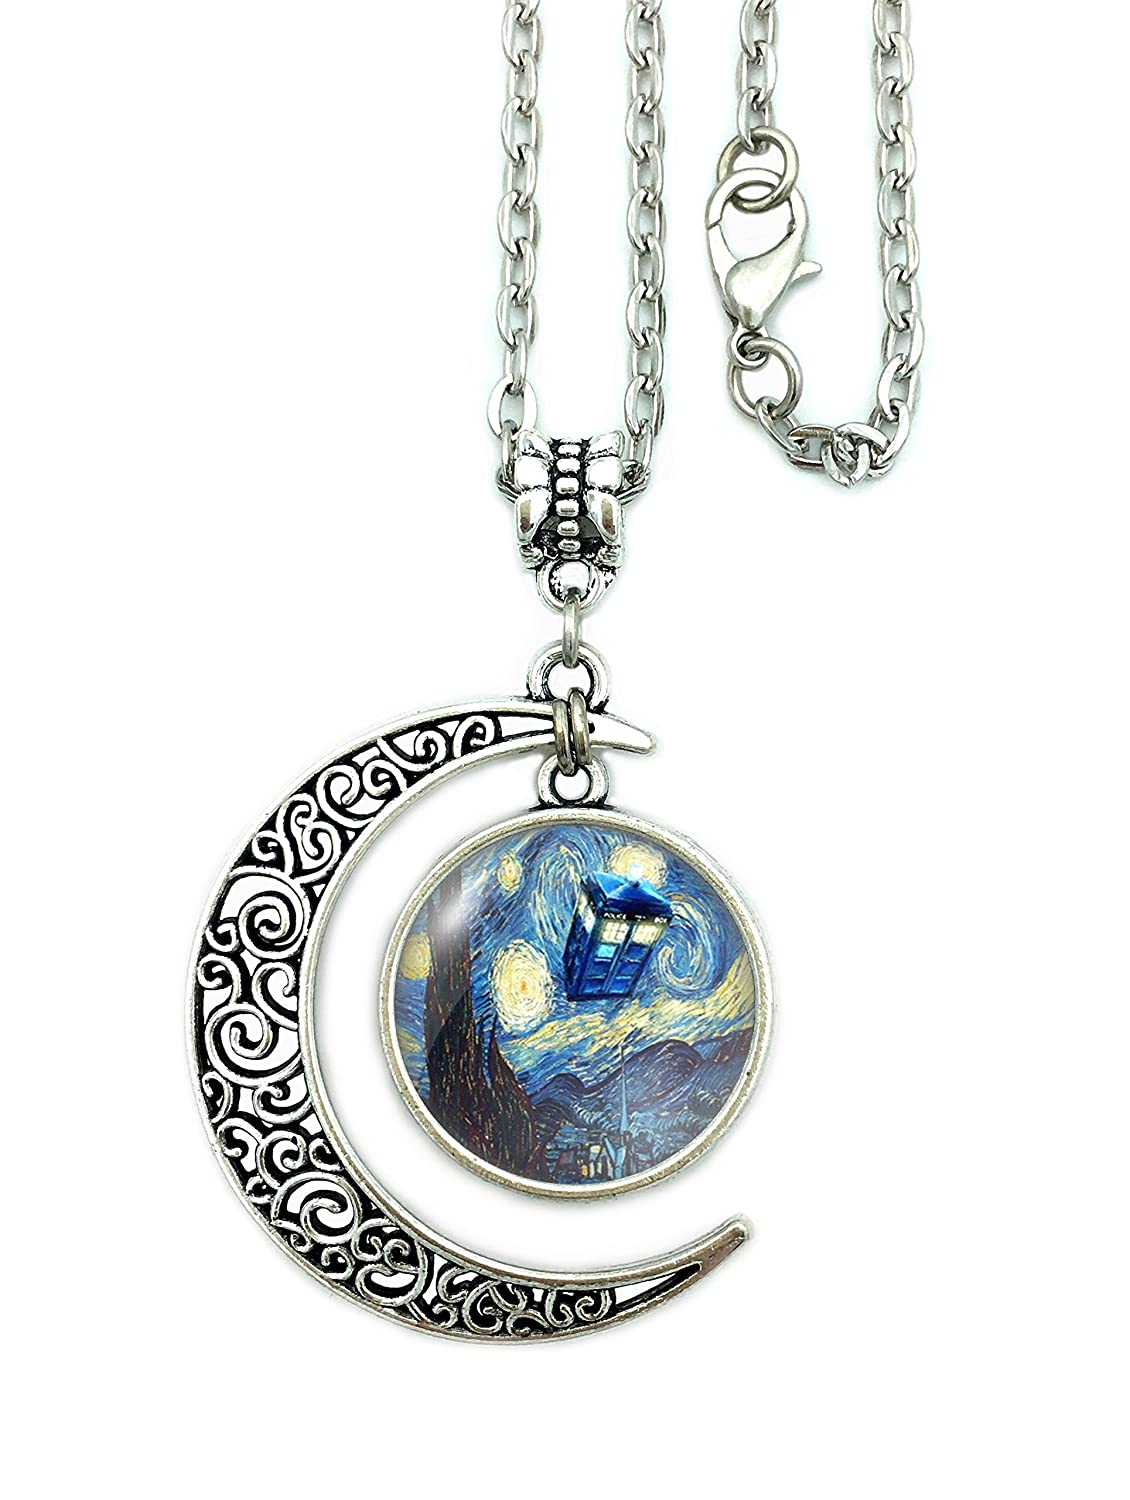 B Seve Moon Necklace Doctor Who The Tardis Crescent Pendant Vincent Van Gogh Starry Night Charms Gift For Women B S J.int N1002